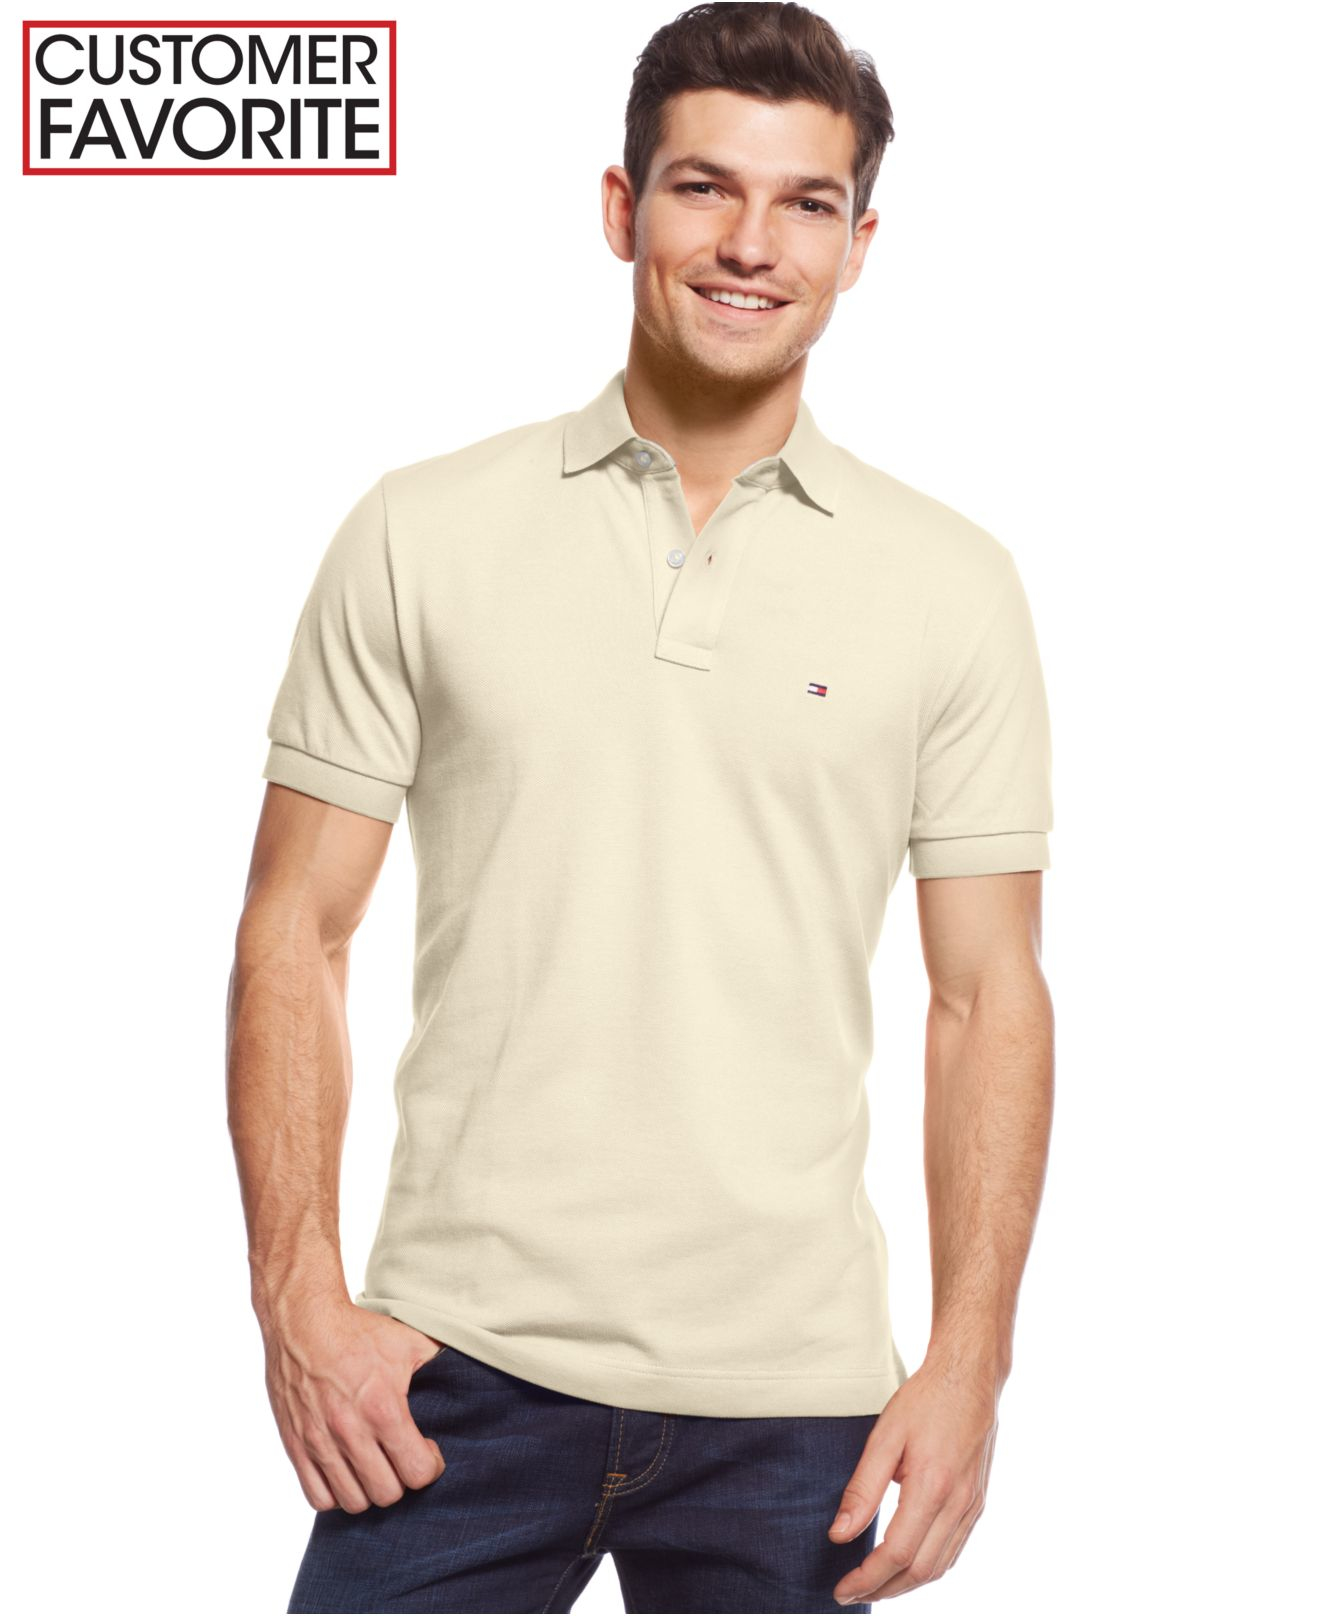 4f9dd9a2 Tommy Hilfiger Custom-fit Ivy Polo in White for Men - Lyst